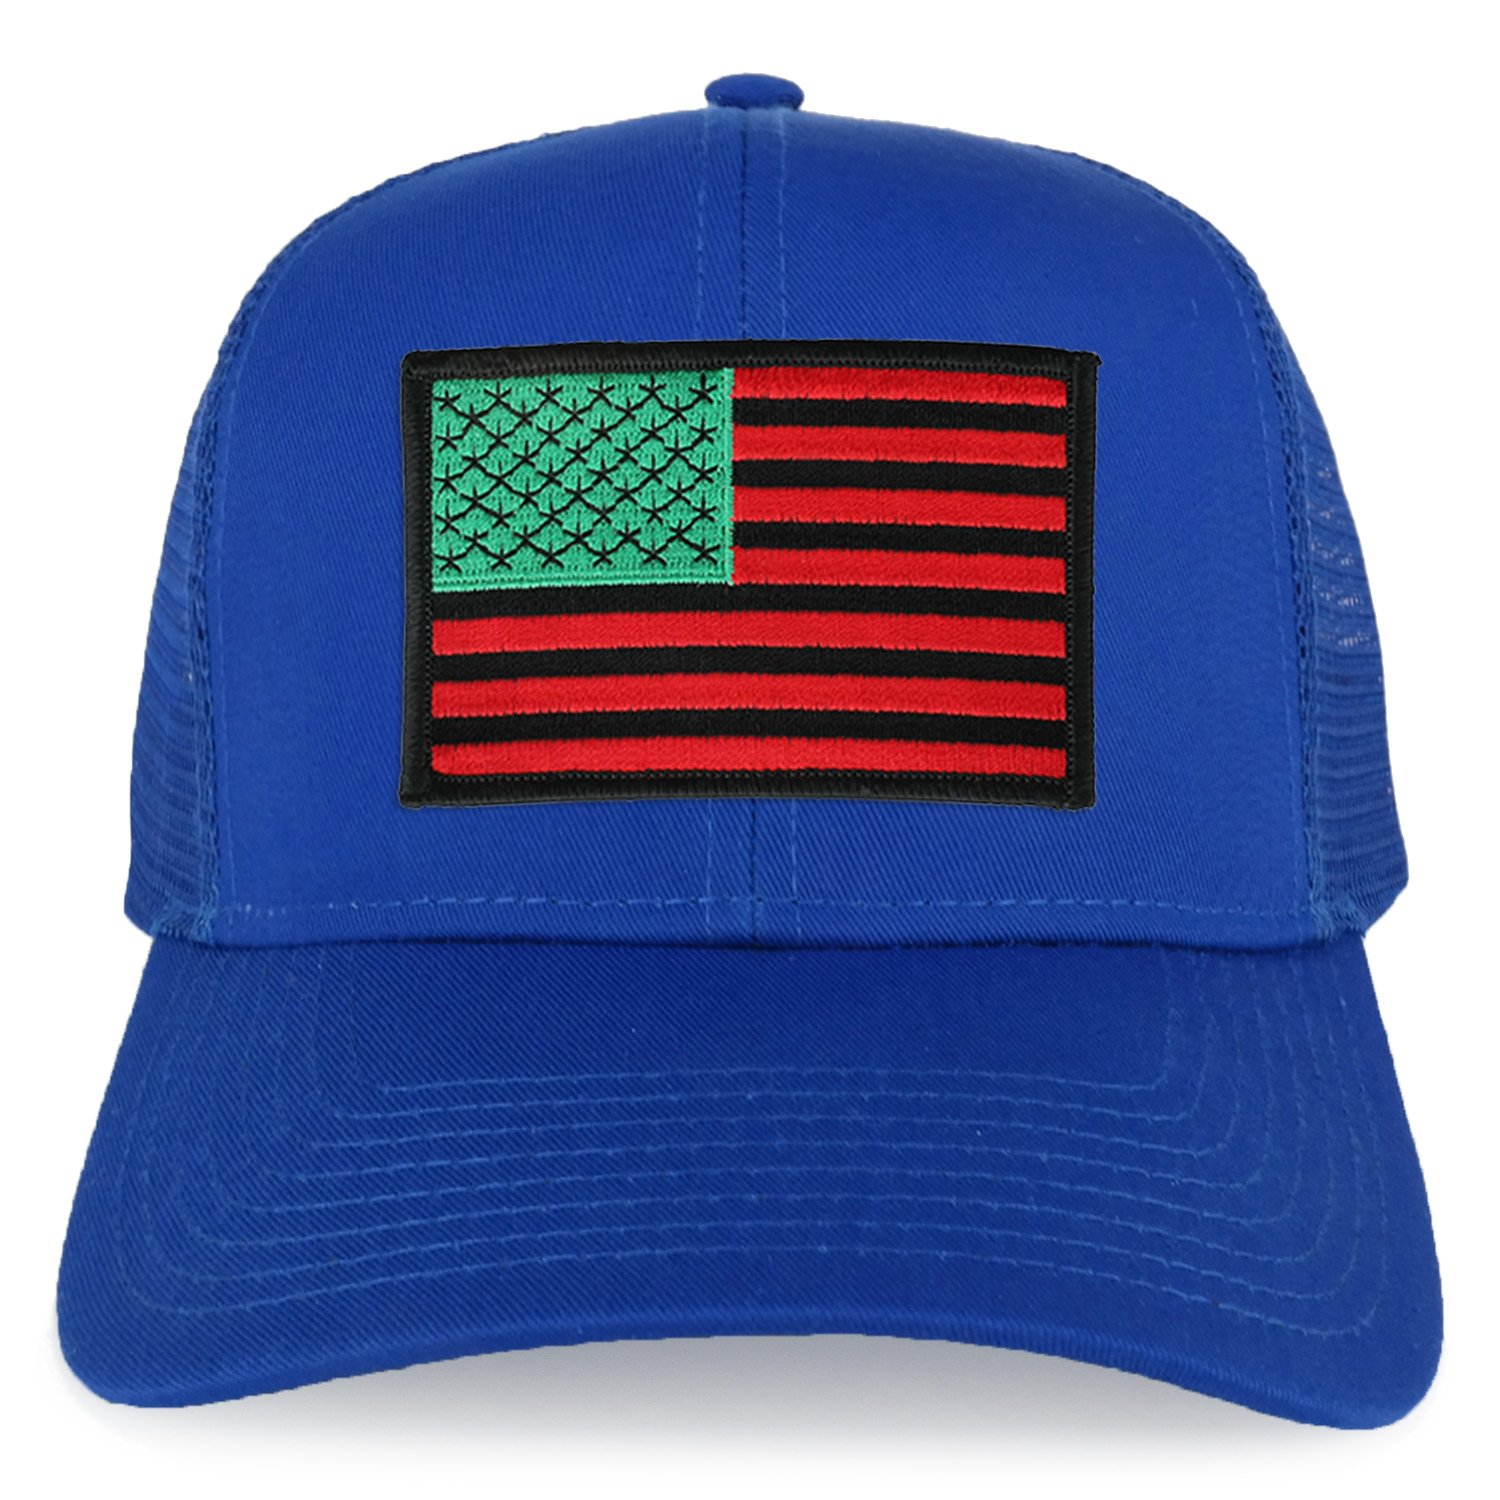 a86aba4357d Armycrew XXL Oversize Red Green Black USA Flag Patch Mesh Back Trucker  Baseball Cap - Black at Amazon Men s Clothing store